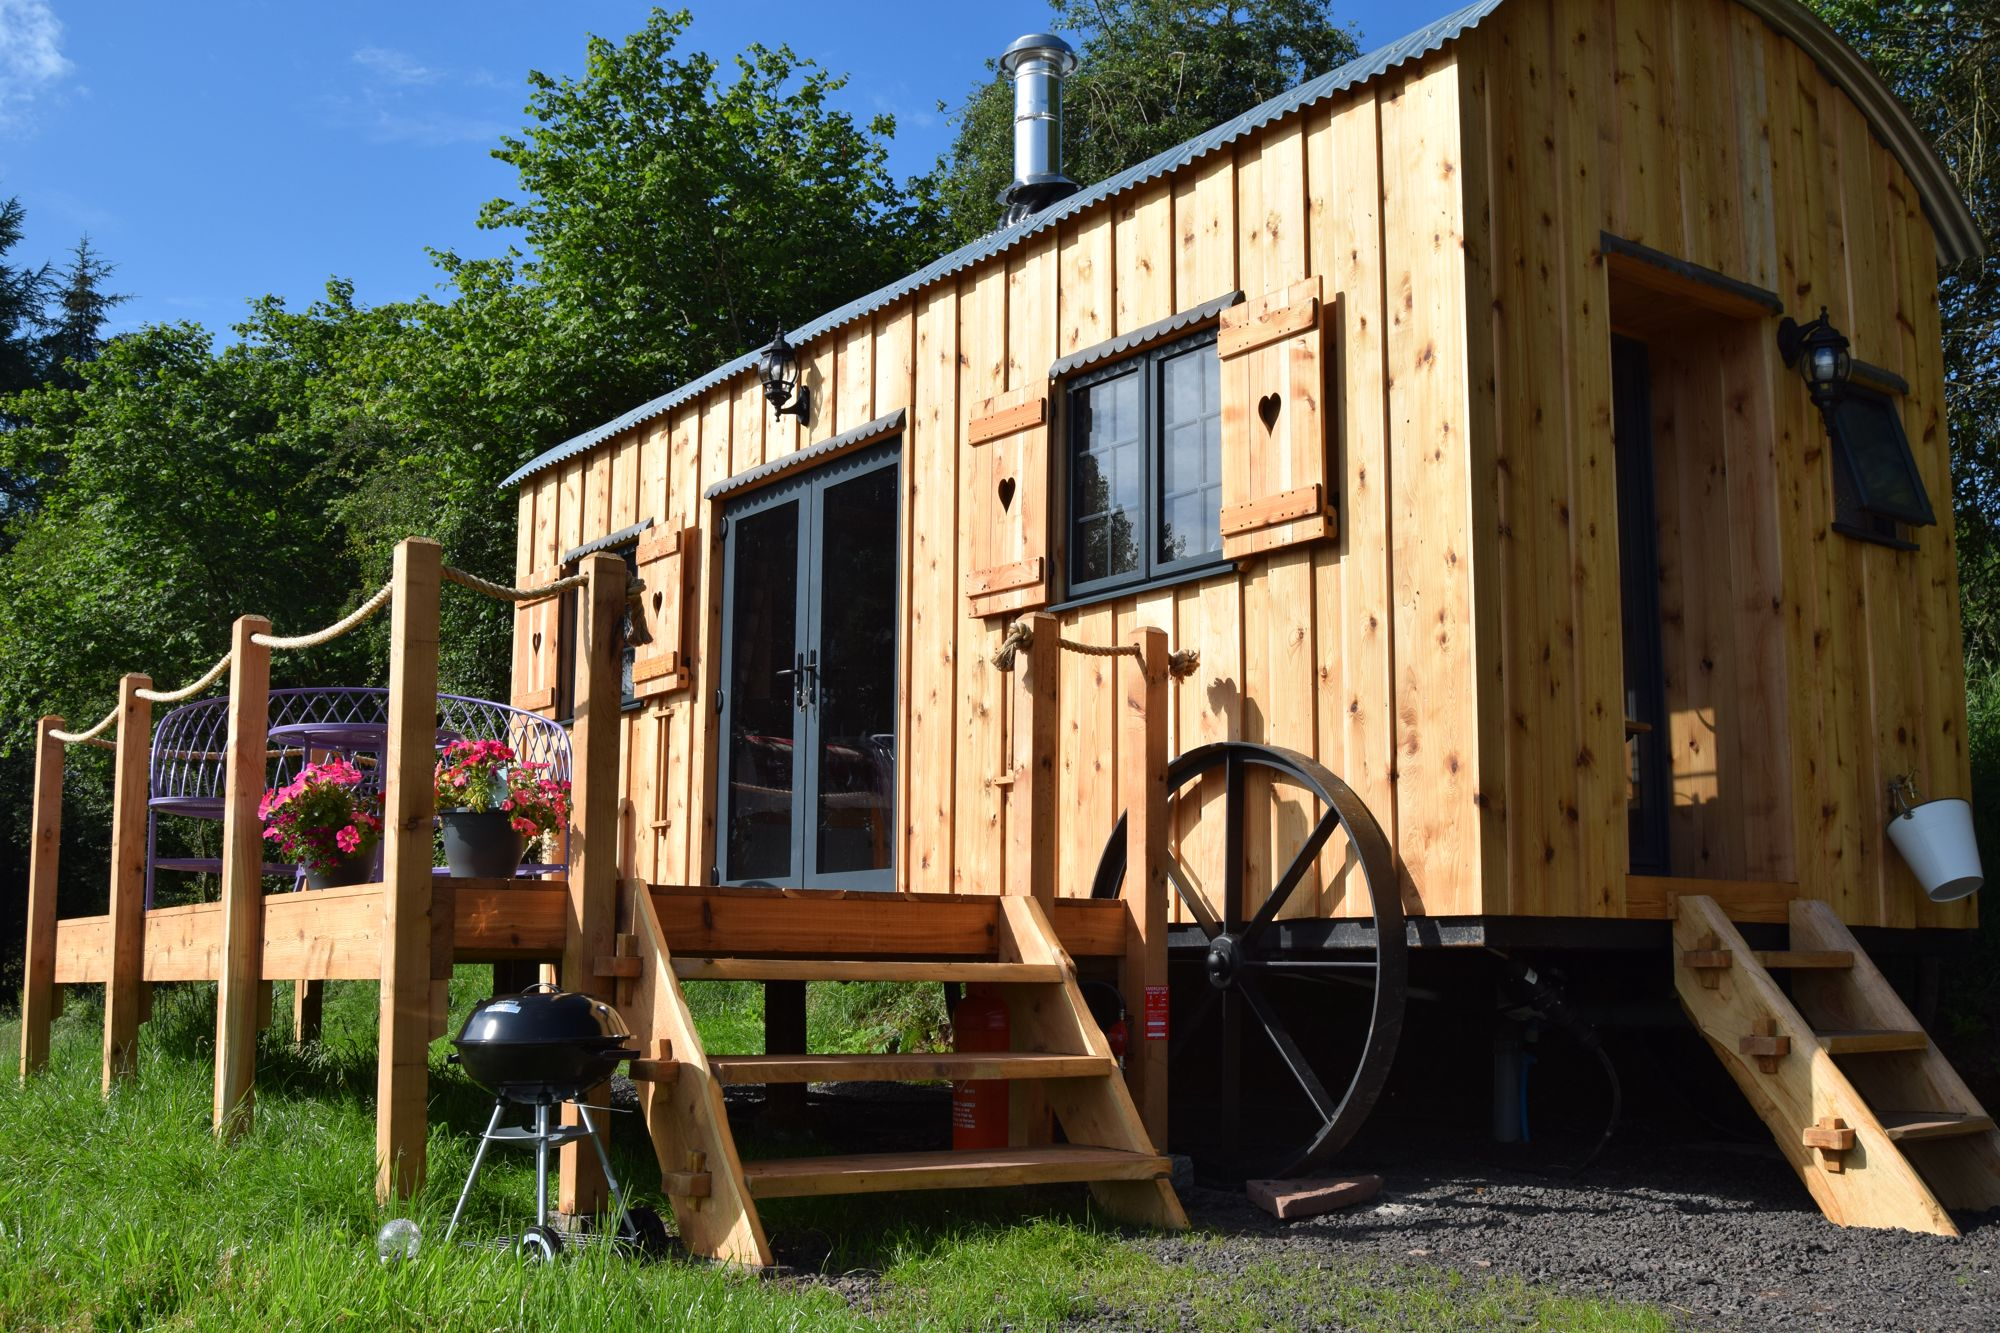 Crai Valley Glamping / Flying Scotsman